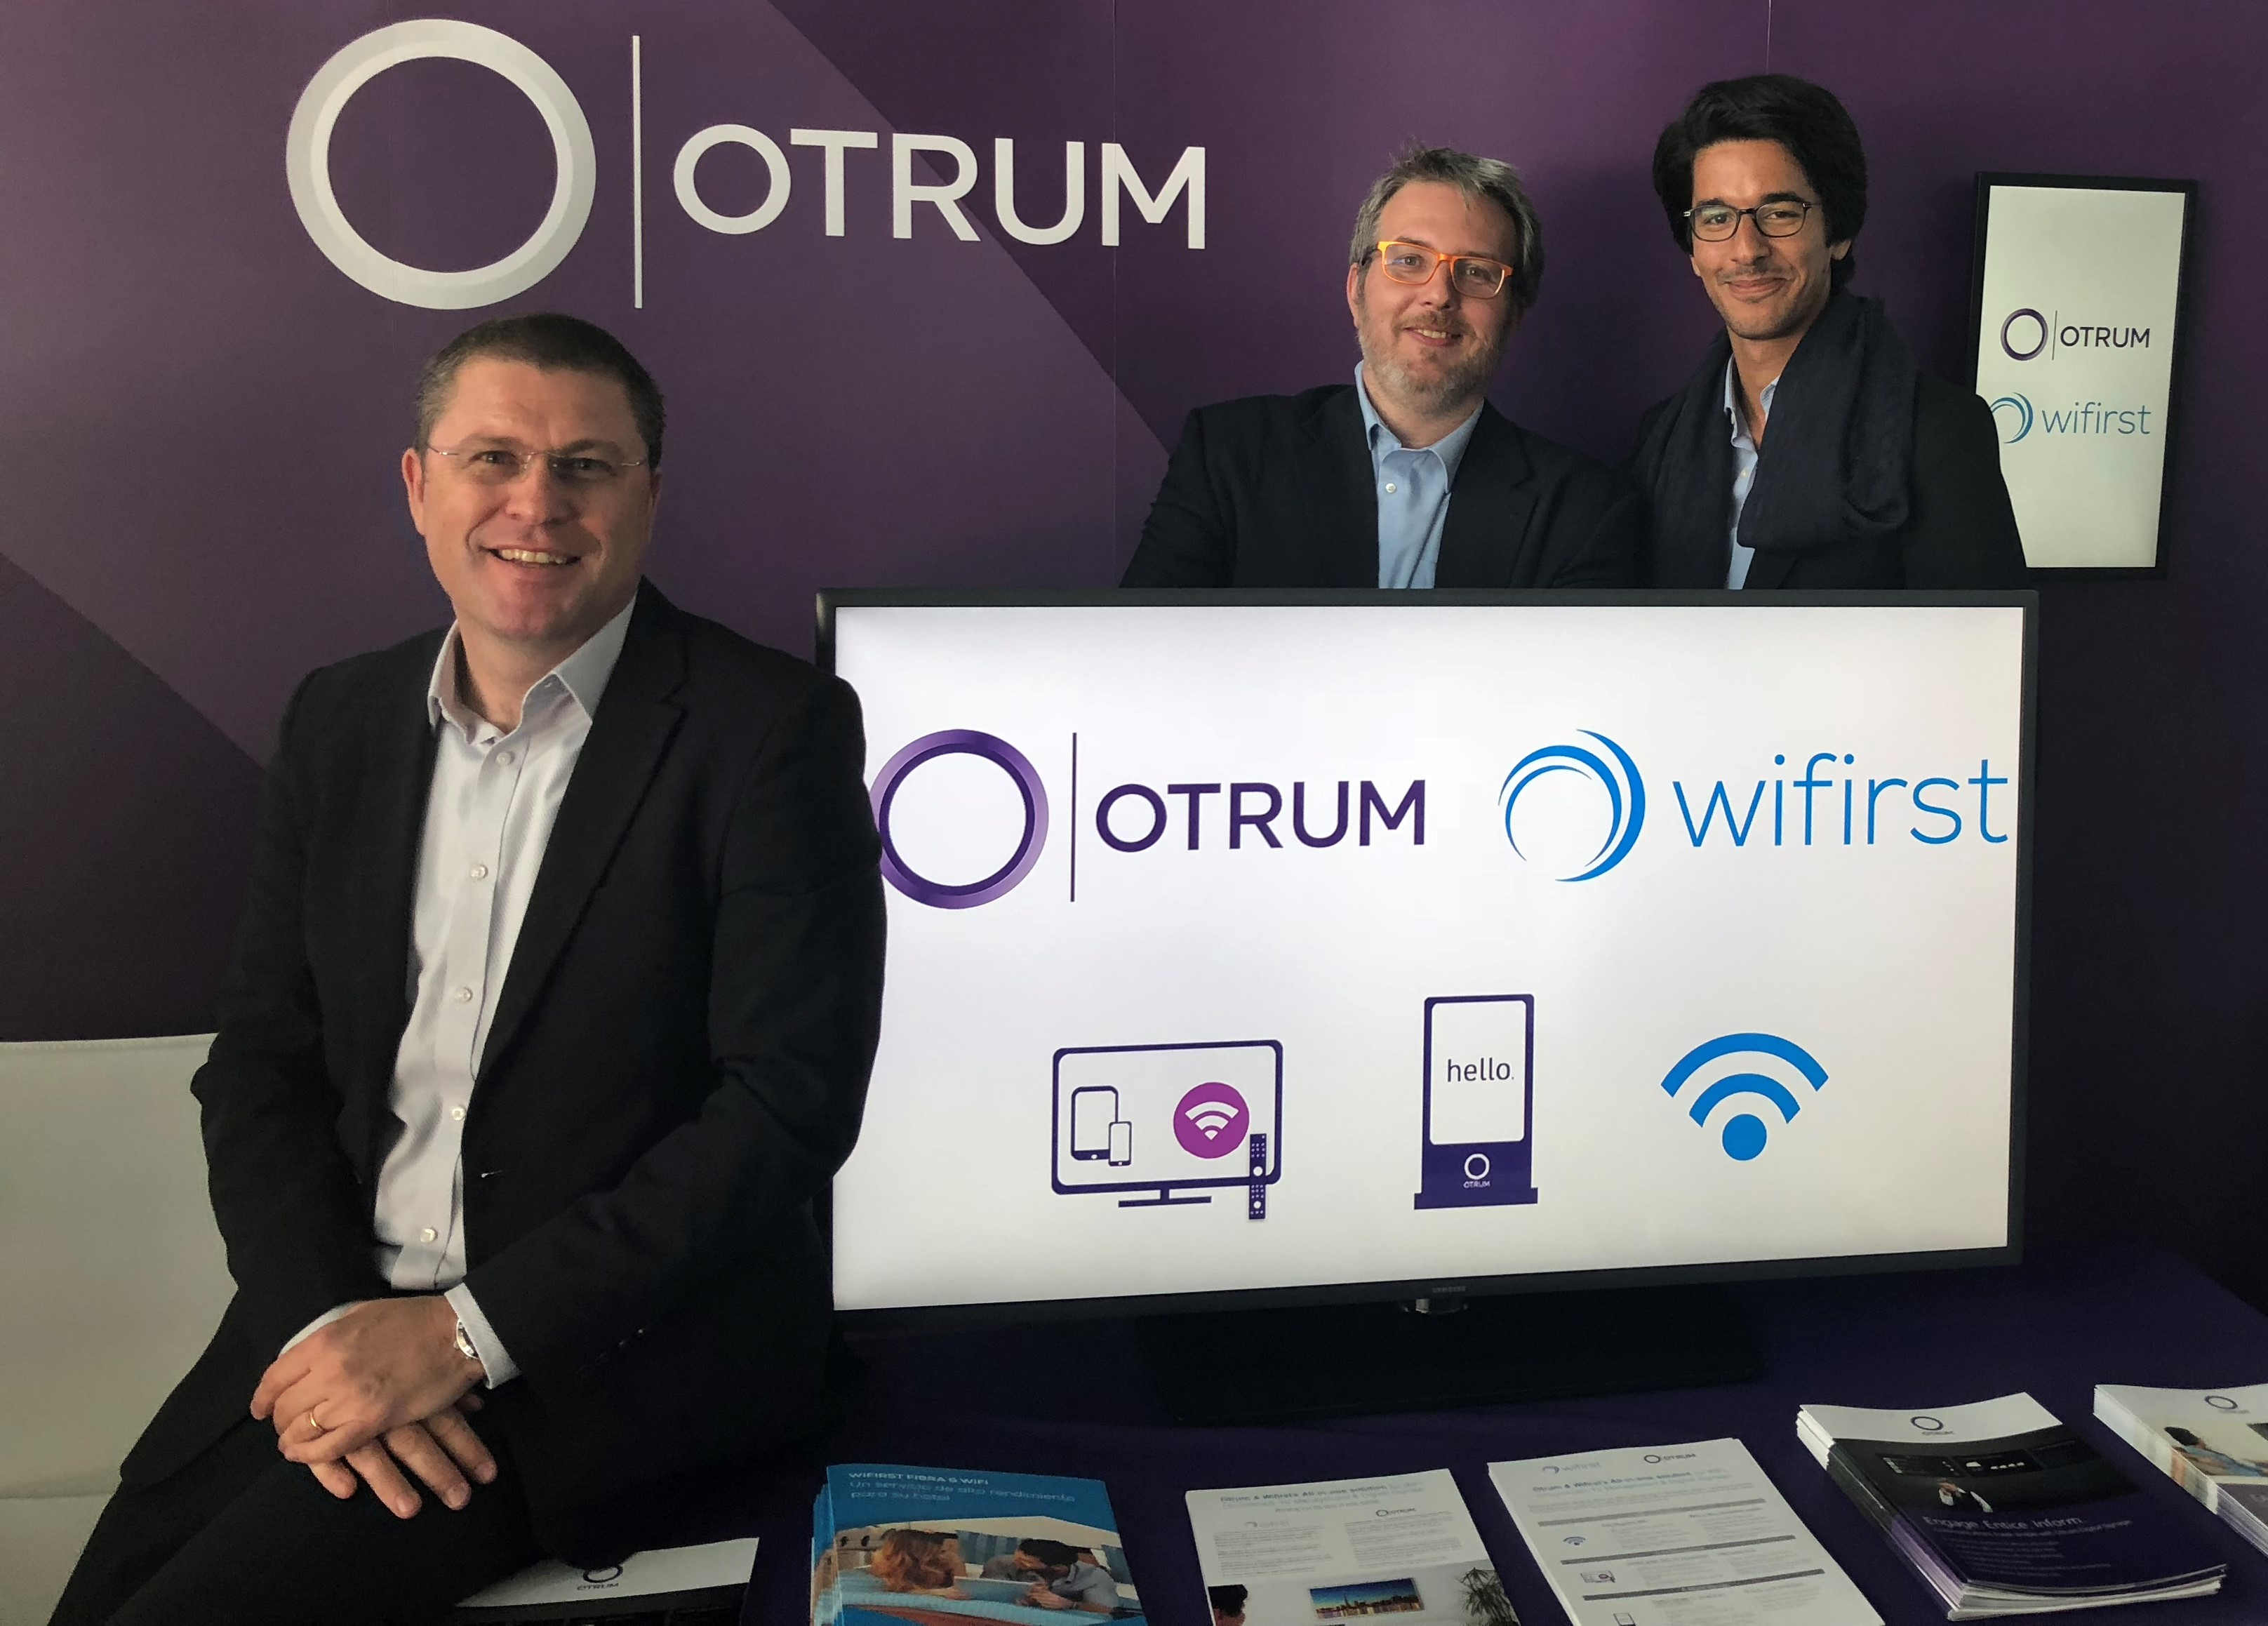 OTRUM AS | Wifirst and Otrum join forces to offer an all-in